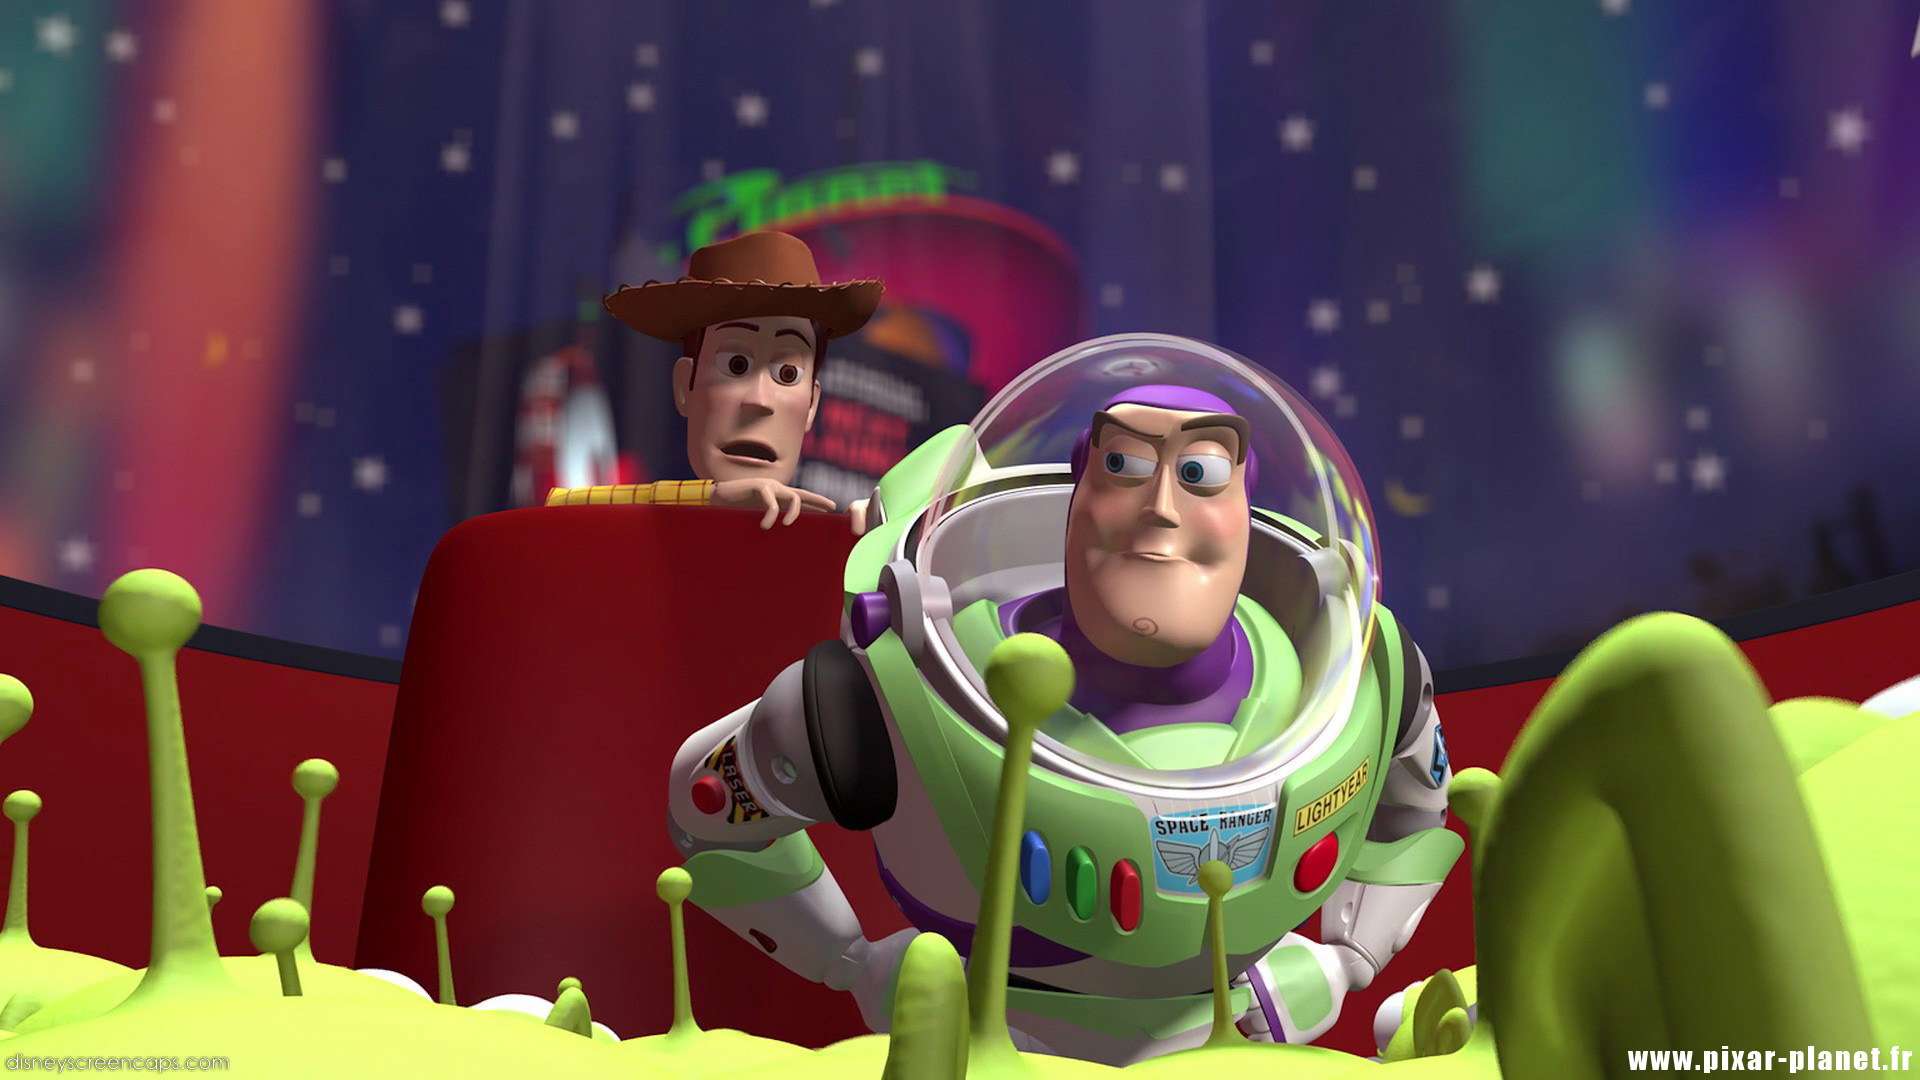 Pixar Planet Disney toy story